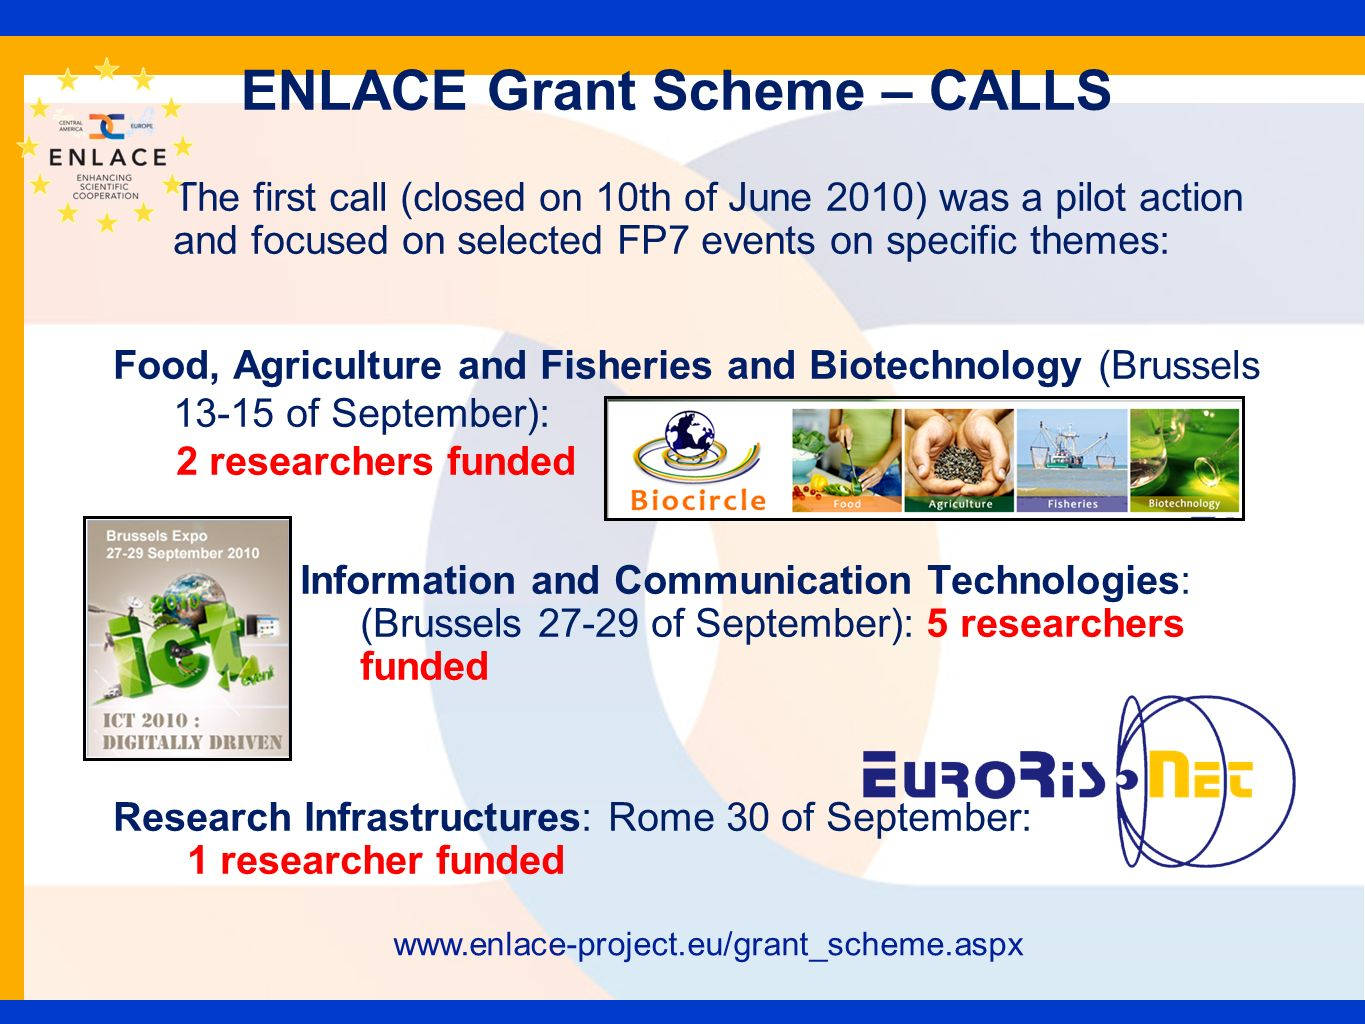 ENLACE Grant Scheme – CALLS The first call (closed on 10th of June 2010) was a pilot action and focused on selected FP7 events on specific themes: Food, Agriculture and Fisheries and Biotechnology (Brussels 13-15 of September): 2 researchers funded Information and Communication Technologies: (Brussels 27-29 of September): 5 researchers funded Research Infrastructures: Rome 30 of September: 1 researcher funded www.enlace-project.eu/grant_scheme.aspx